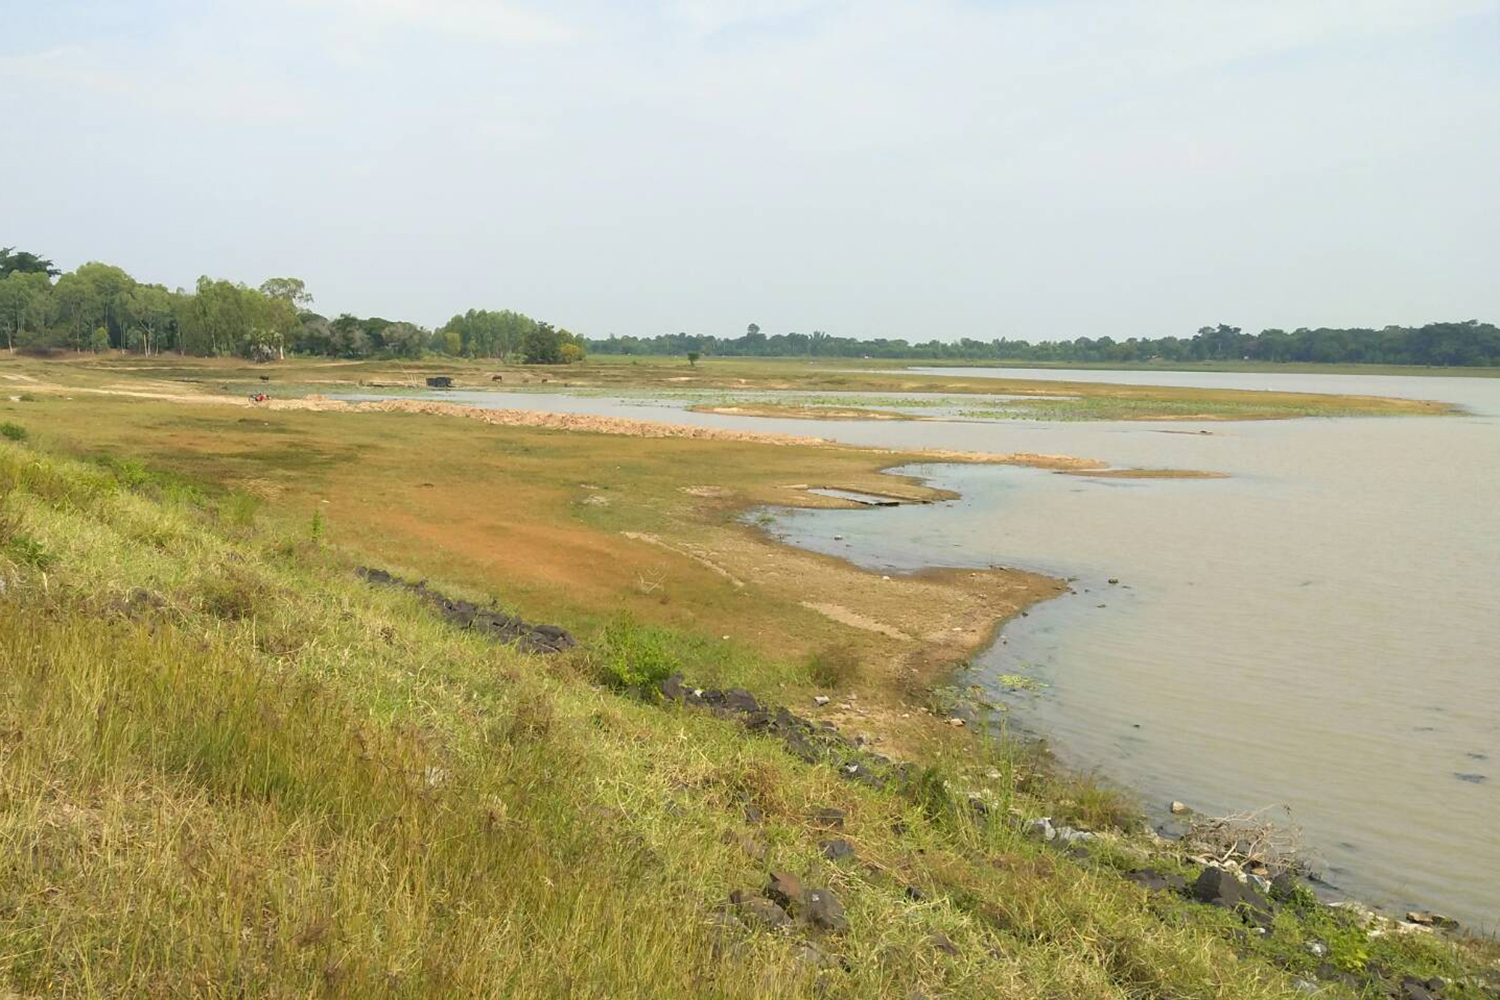 The water level in a reservoir in Phi Mai district of Nakhon Ratchasima has dropped due to the drought that has hit the province. (Photo by Prasit Tangprasert)